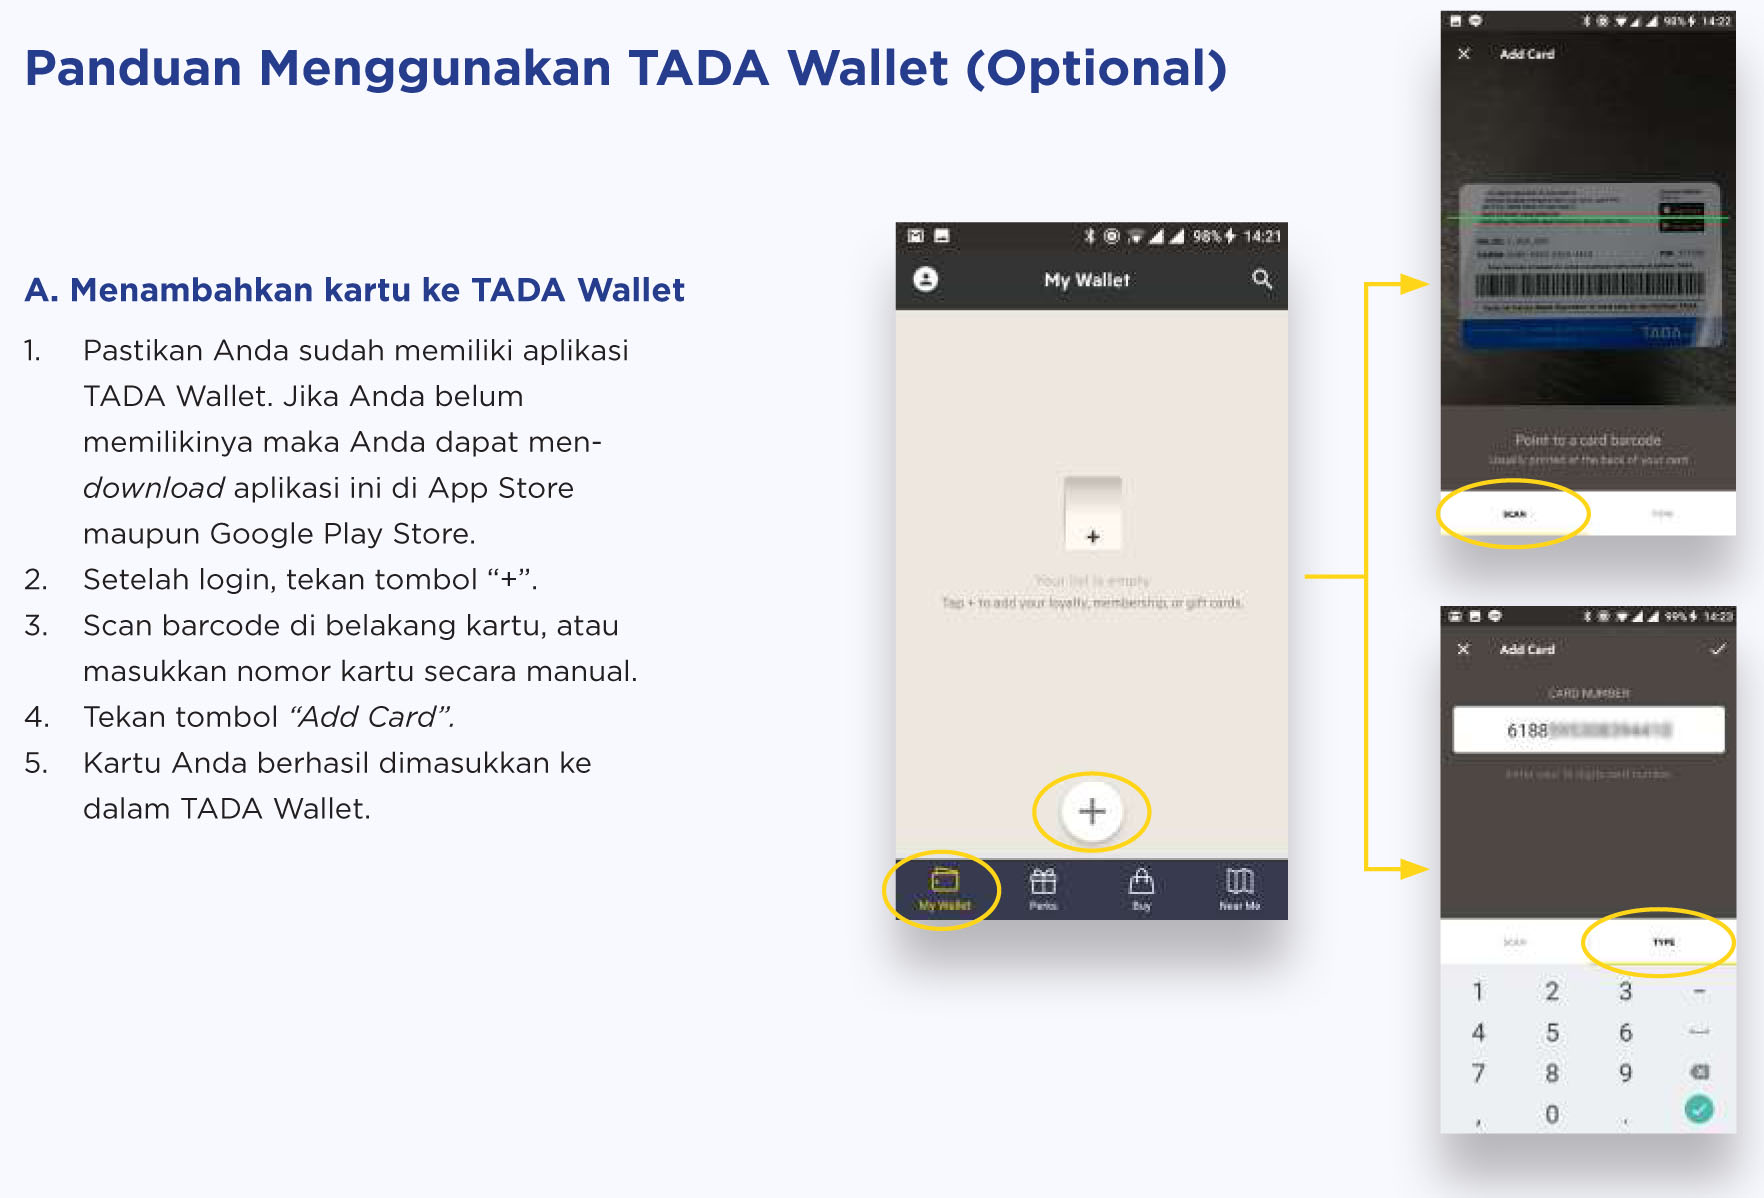 tada wallet allianz platinum